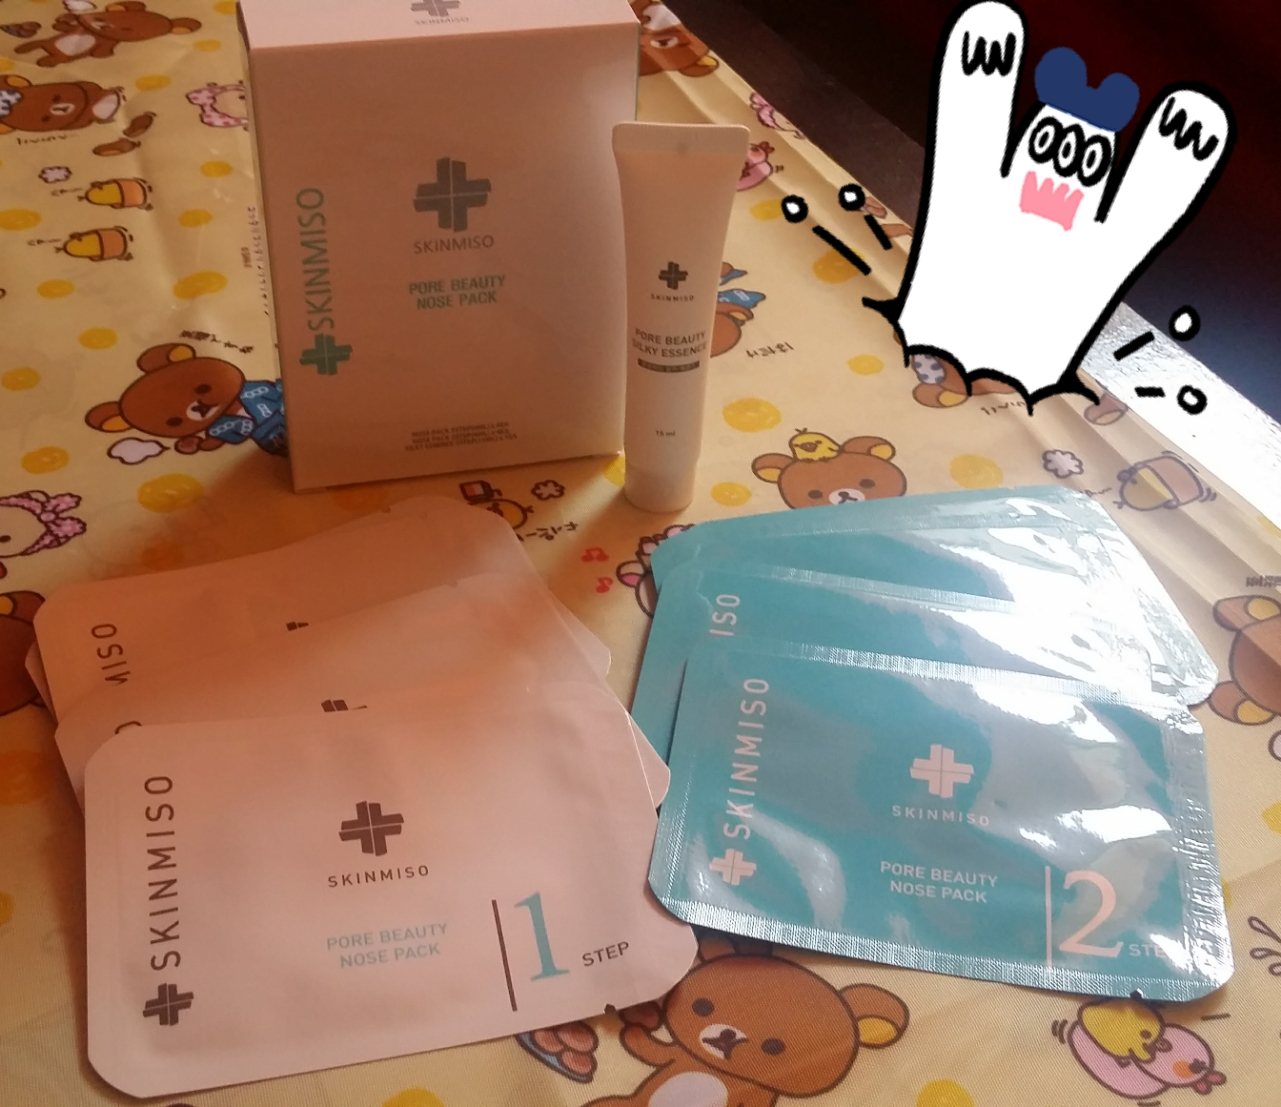 skinmiso pore beauty nose pack instructions